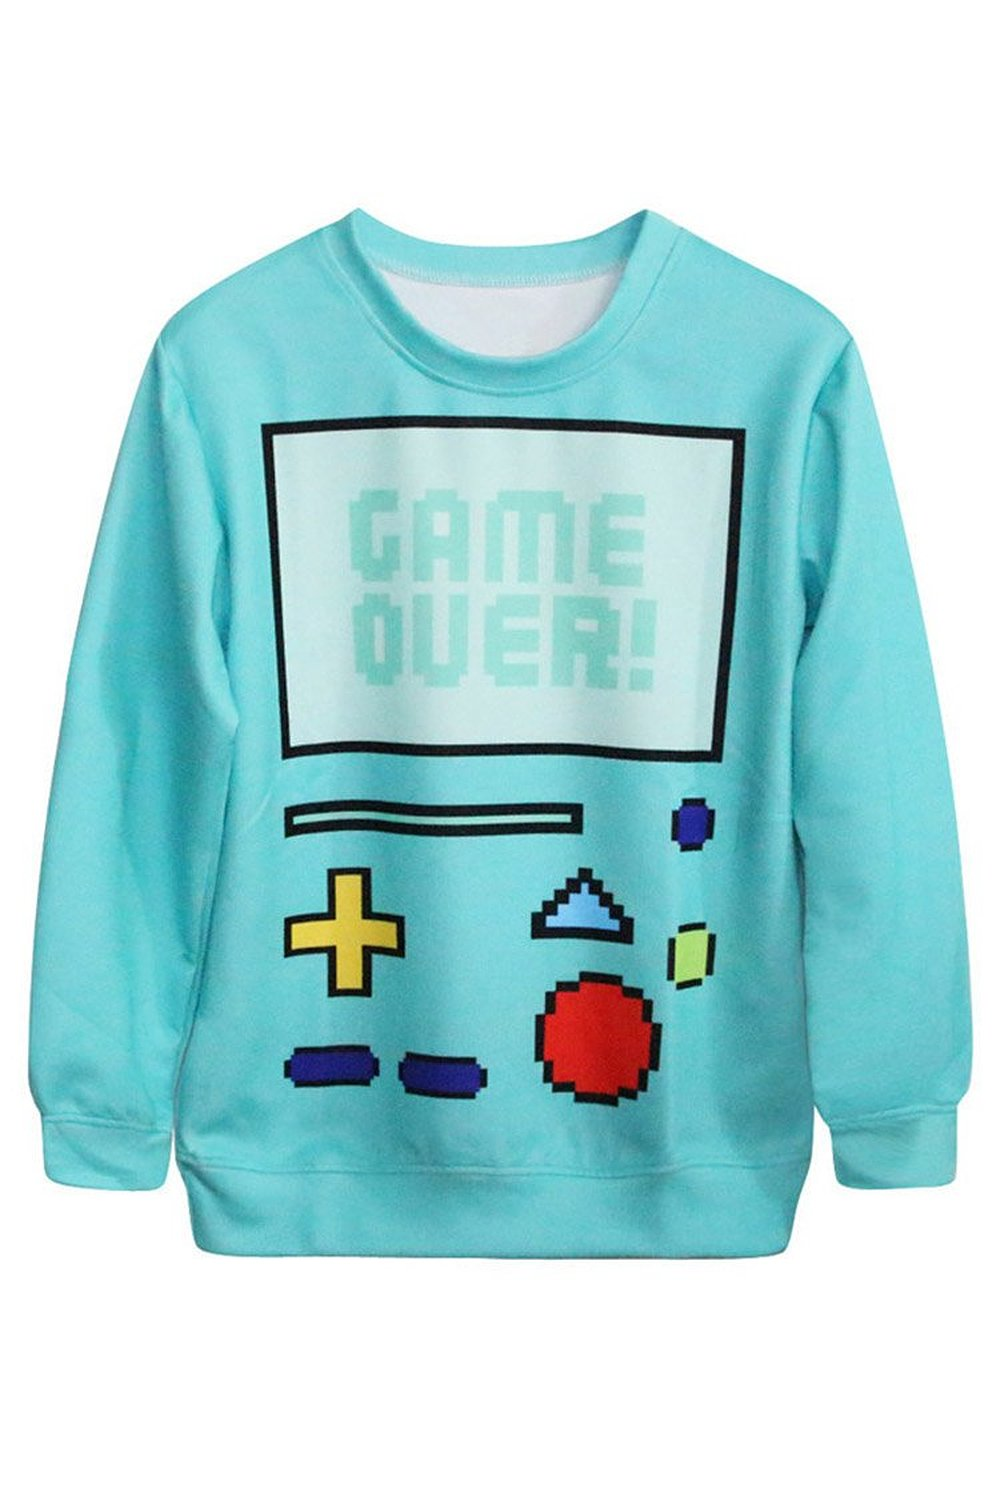 Queen Womens 3d Cartoon Print Long Sleeve Sweater Pullover ...